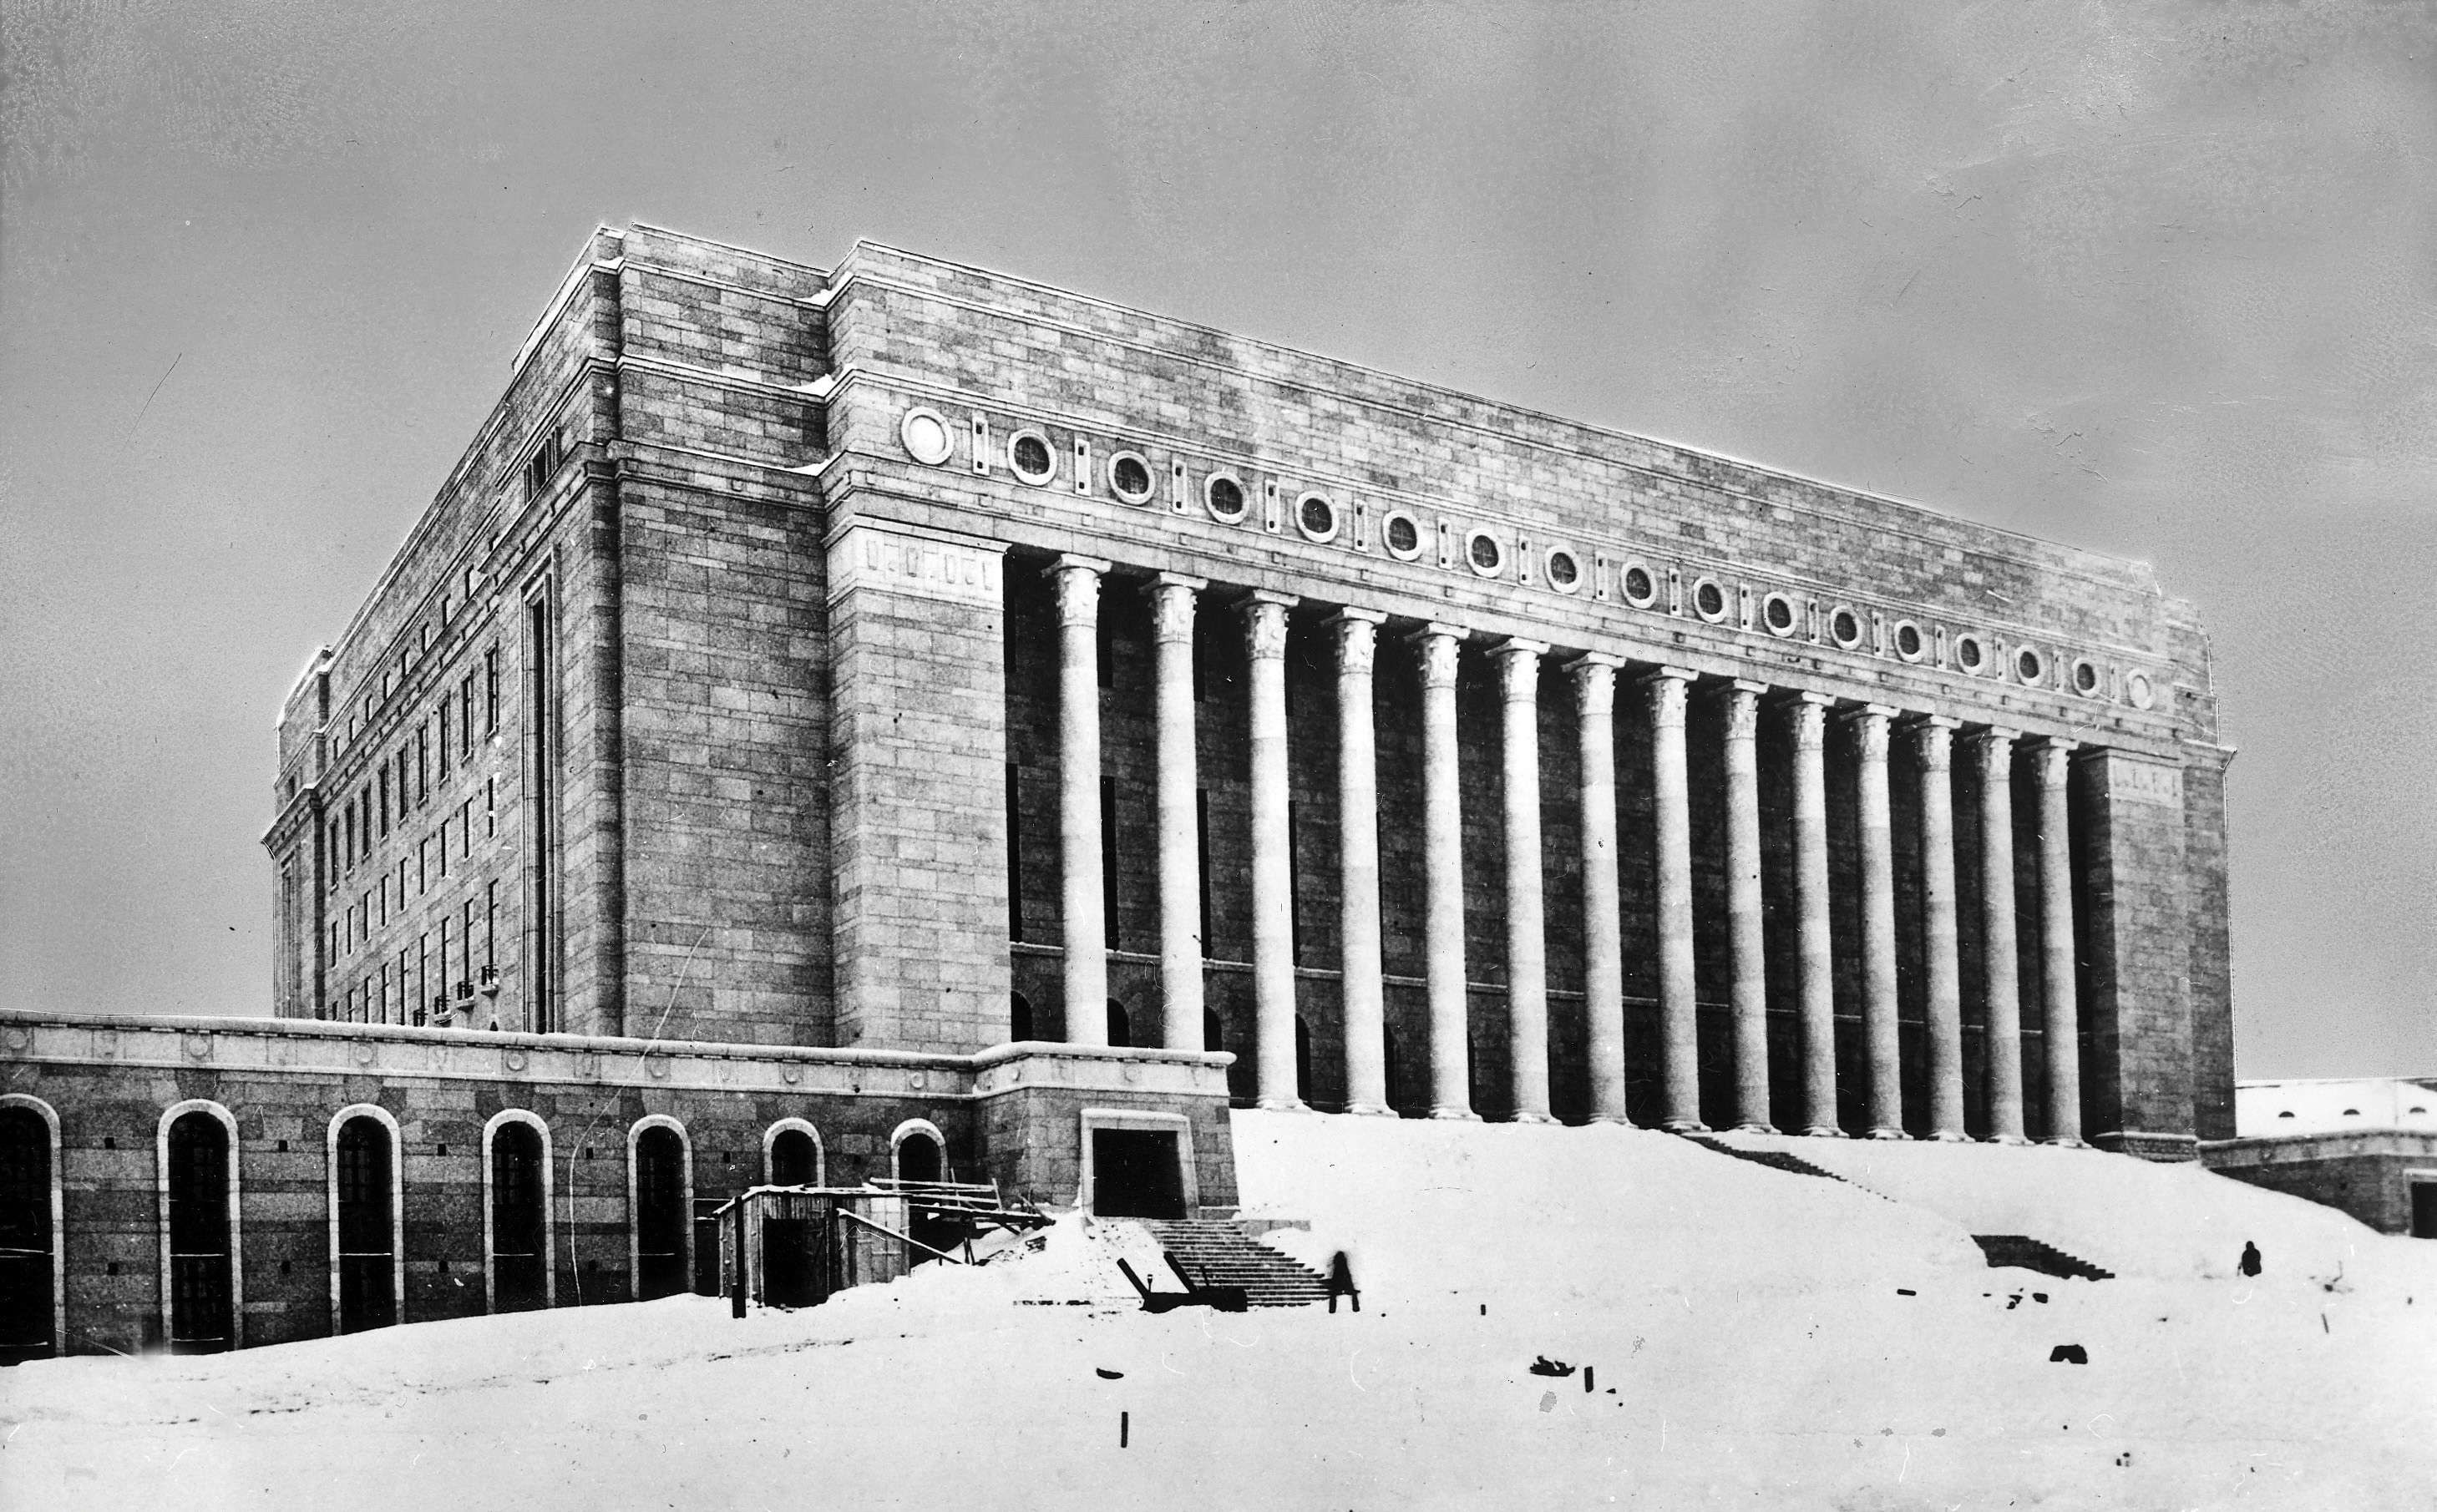 Slide 15 of 55: (Limited rights for certain editorial clients in Germany.) The Finnish Parliament Building in Helsinki. Architect: Siren1931 (Photo by ullstein bild / ullstein bild via Getty Images)